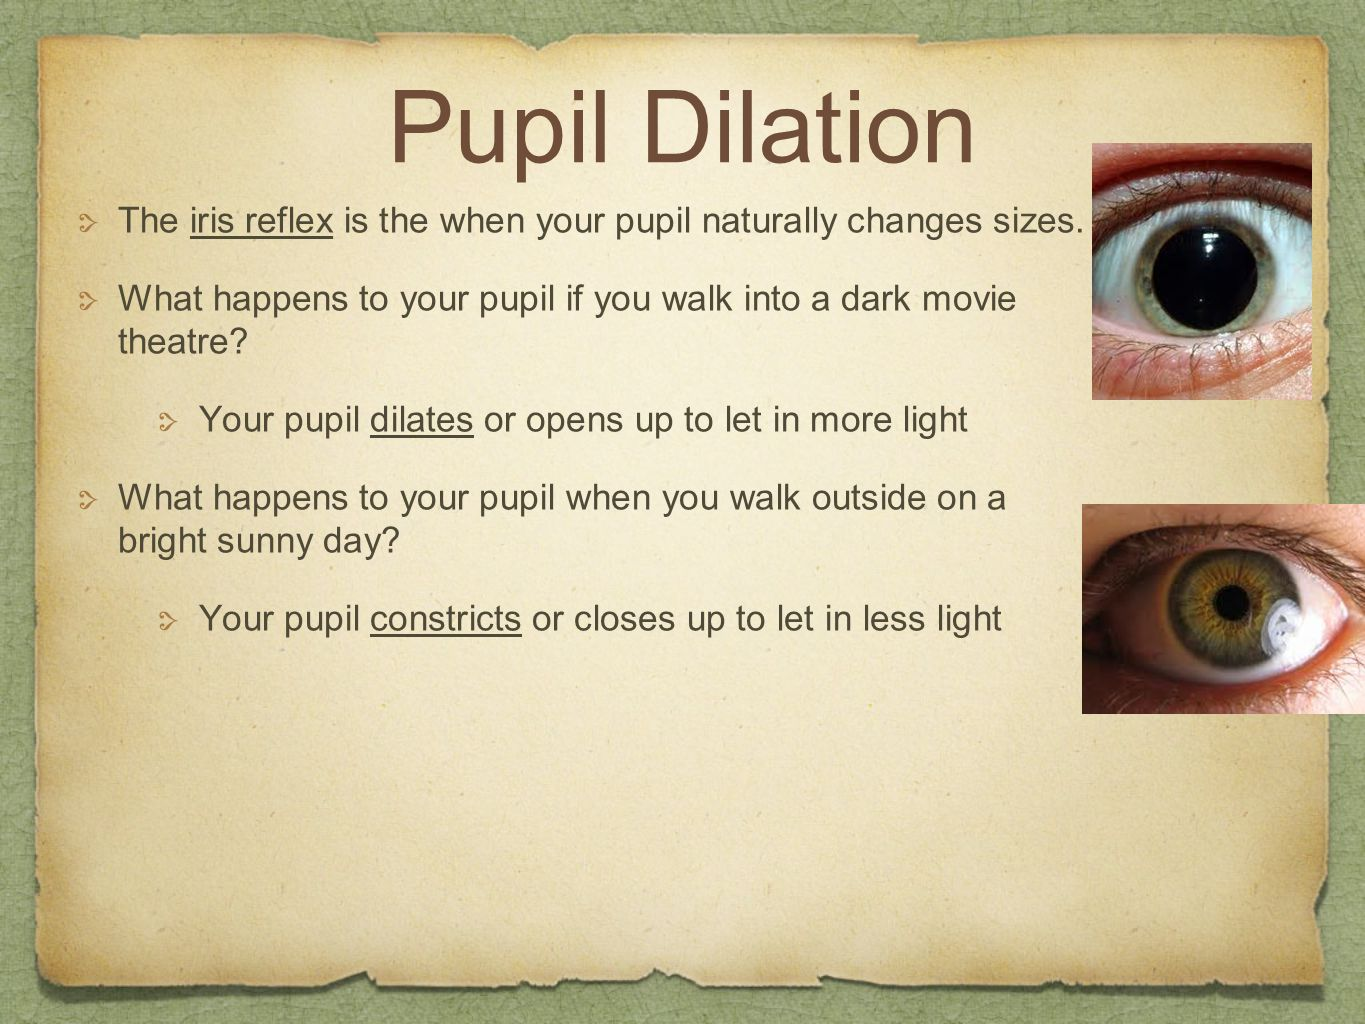 Pupil Dilation The iris reflex is the when your pupil naturally changes sizes. What happens to your pupil if you walk into a dark movie theatre